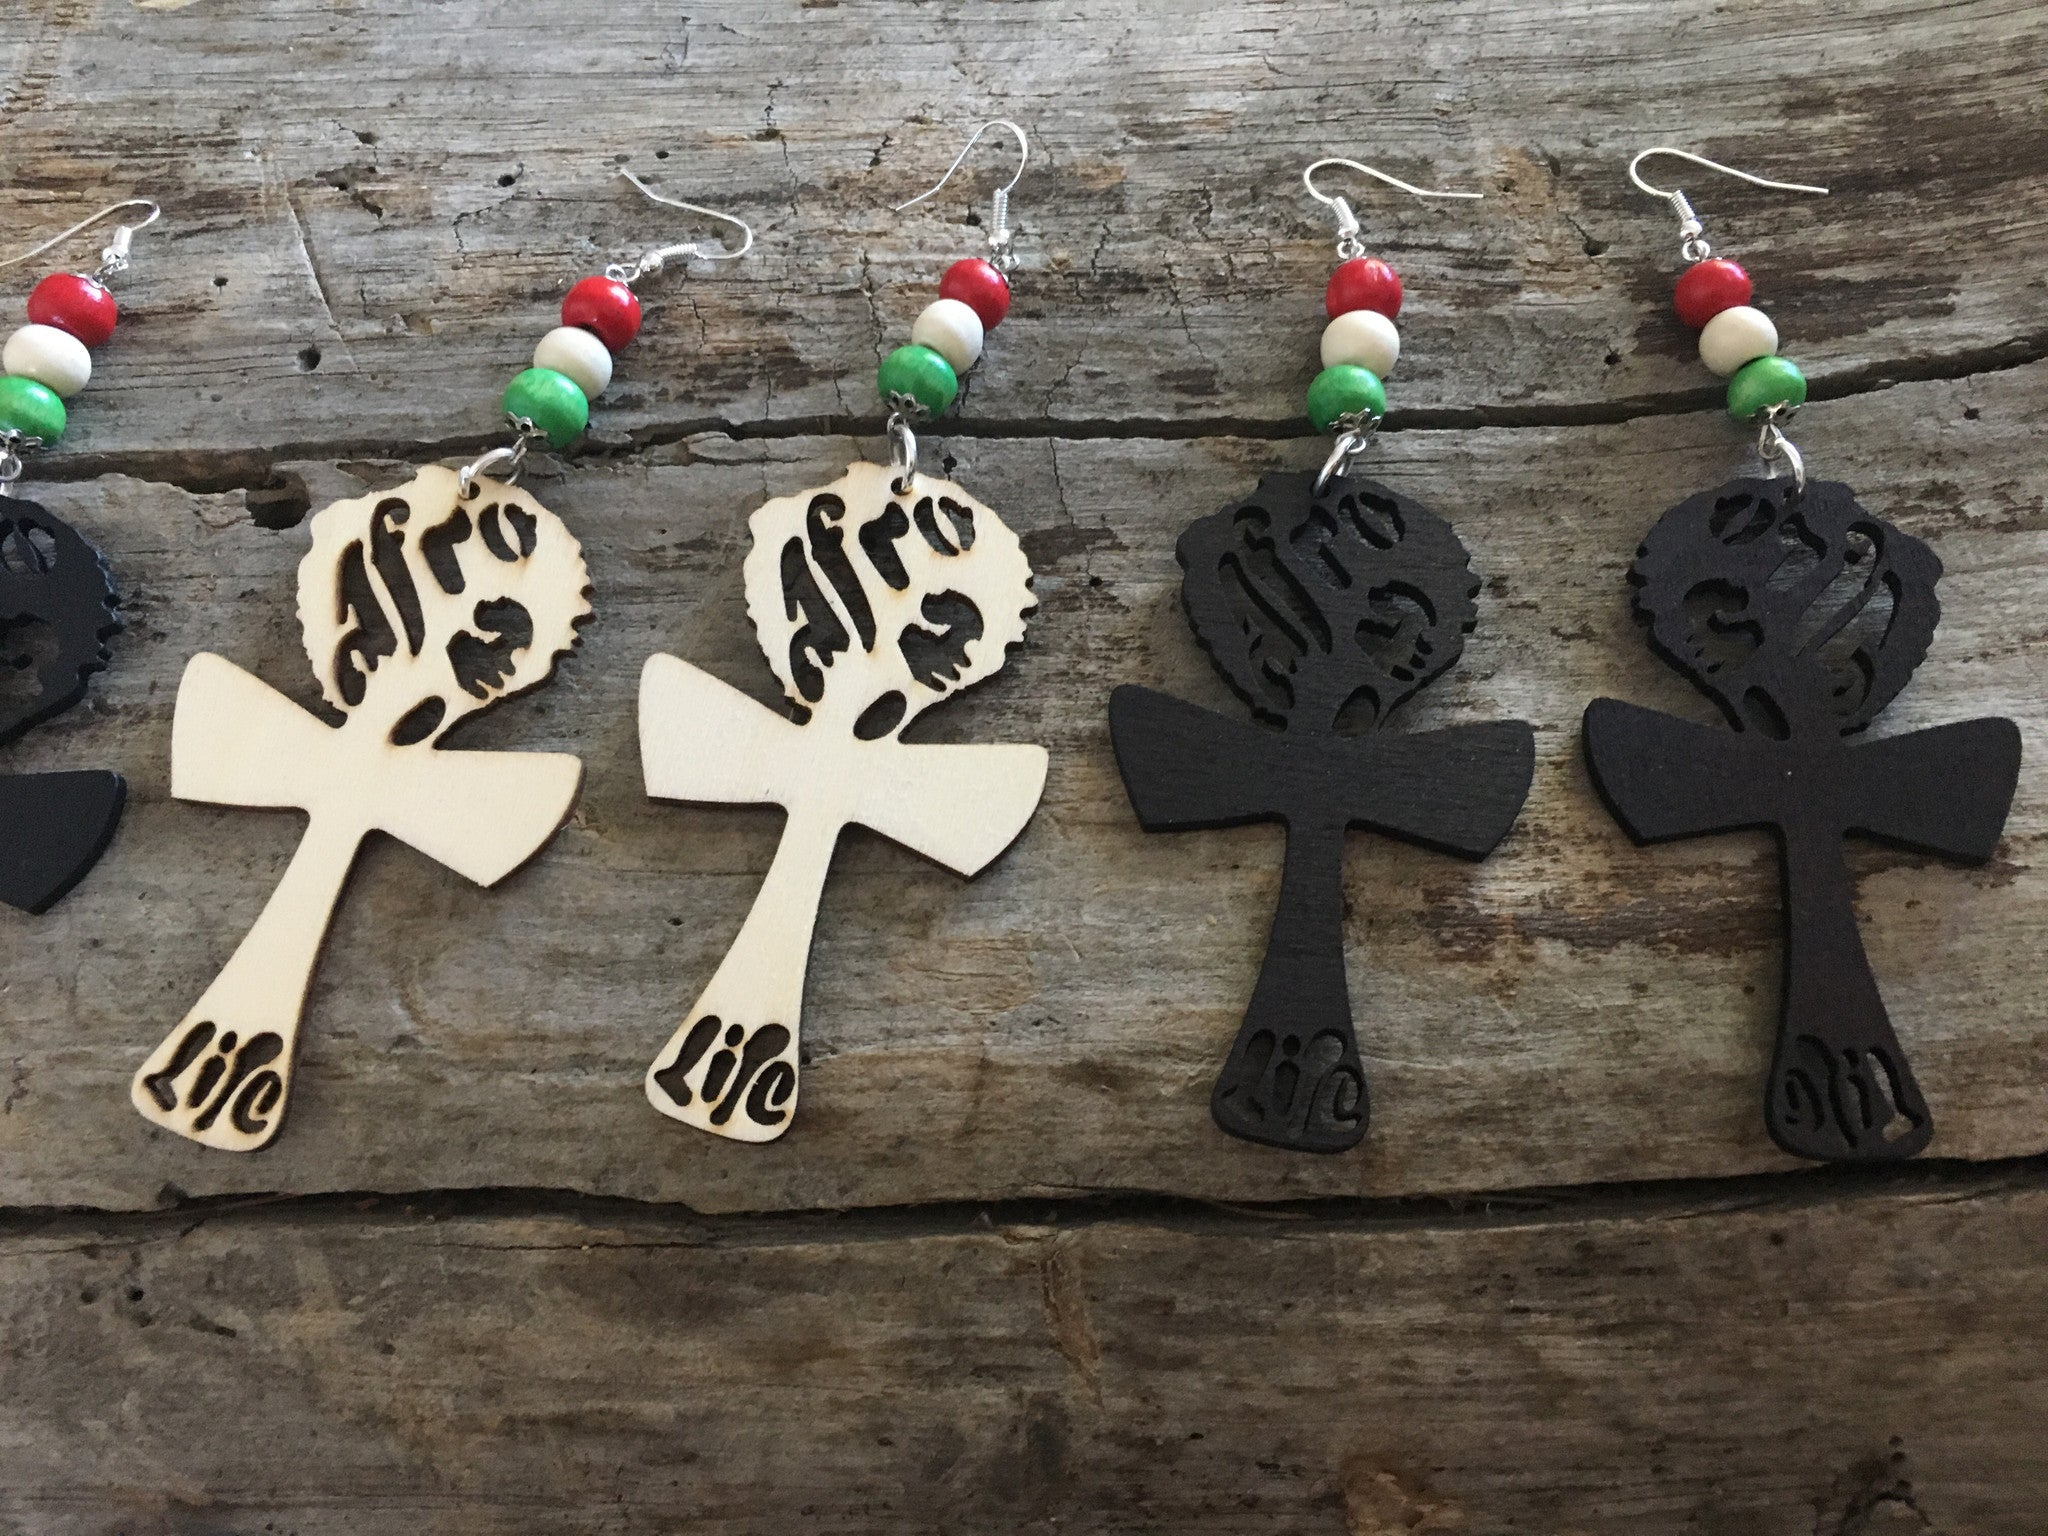 Afro Life Ankh Earrings